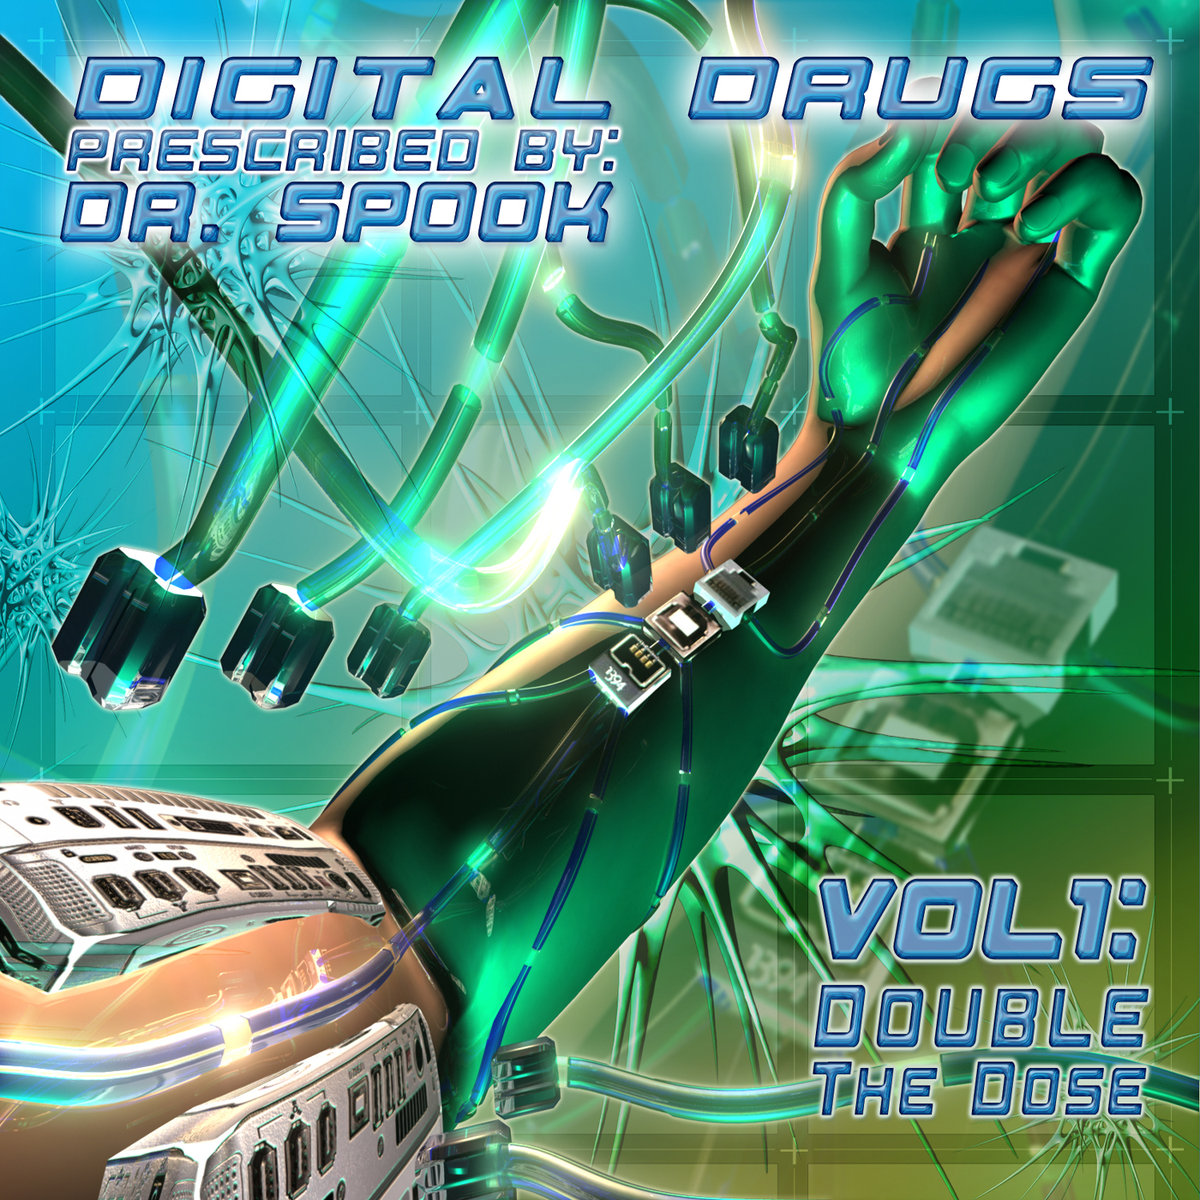 K-Laps - Ciclosporina @ 'Various Artists - Digital Drugs Vol.1: Double the Dose (Prescribed by Dr. Spook)' album (electronic, goa)